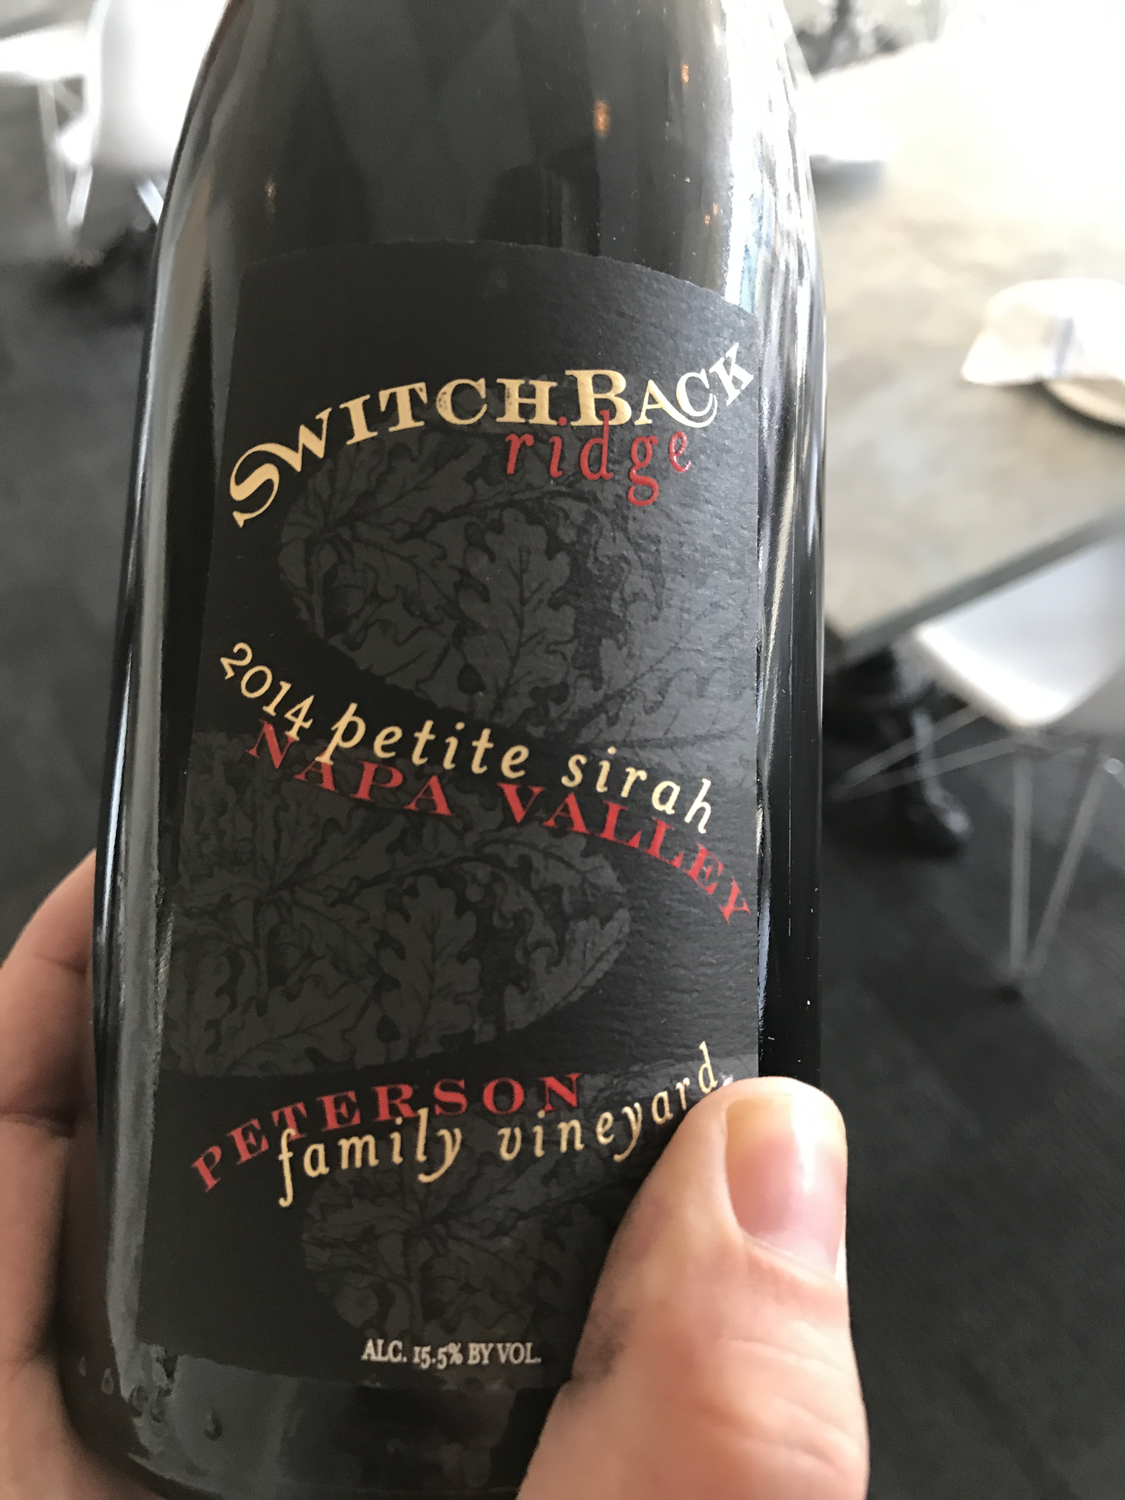 Switchback Ridge Petite Sirah 2014